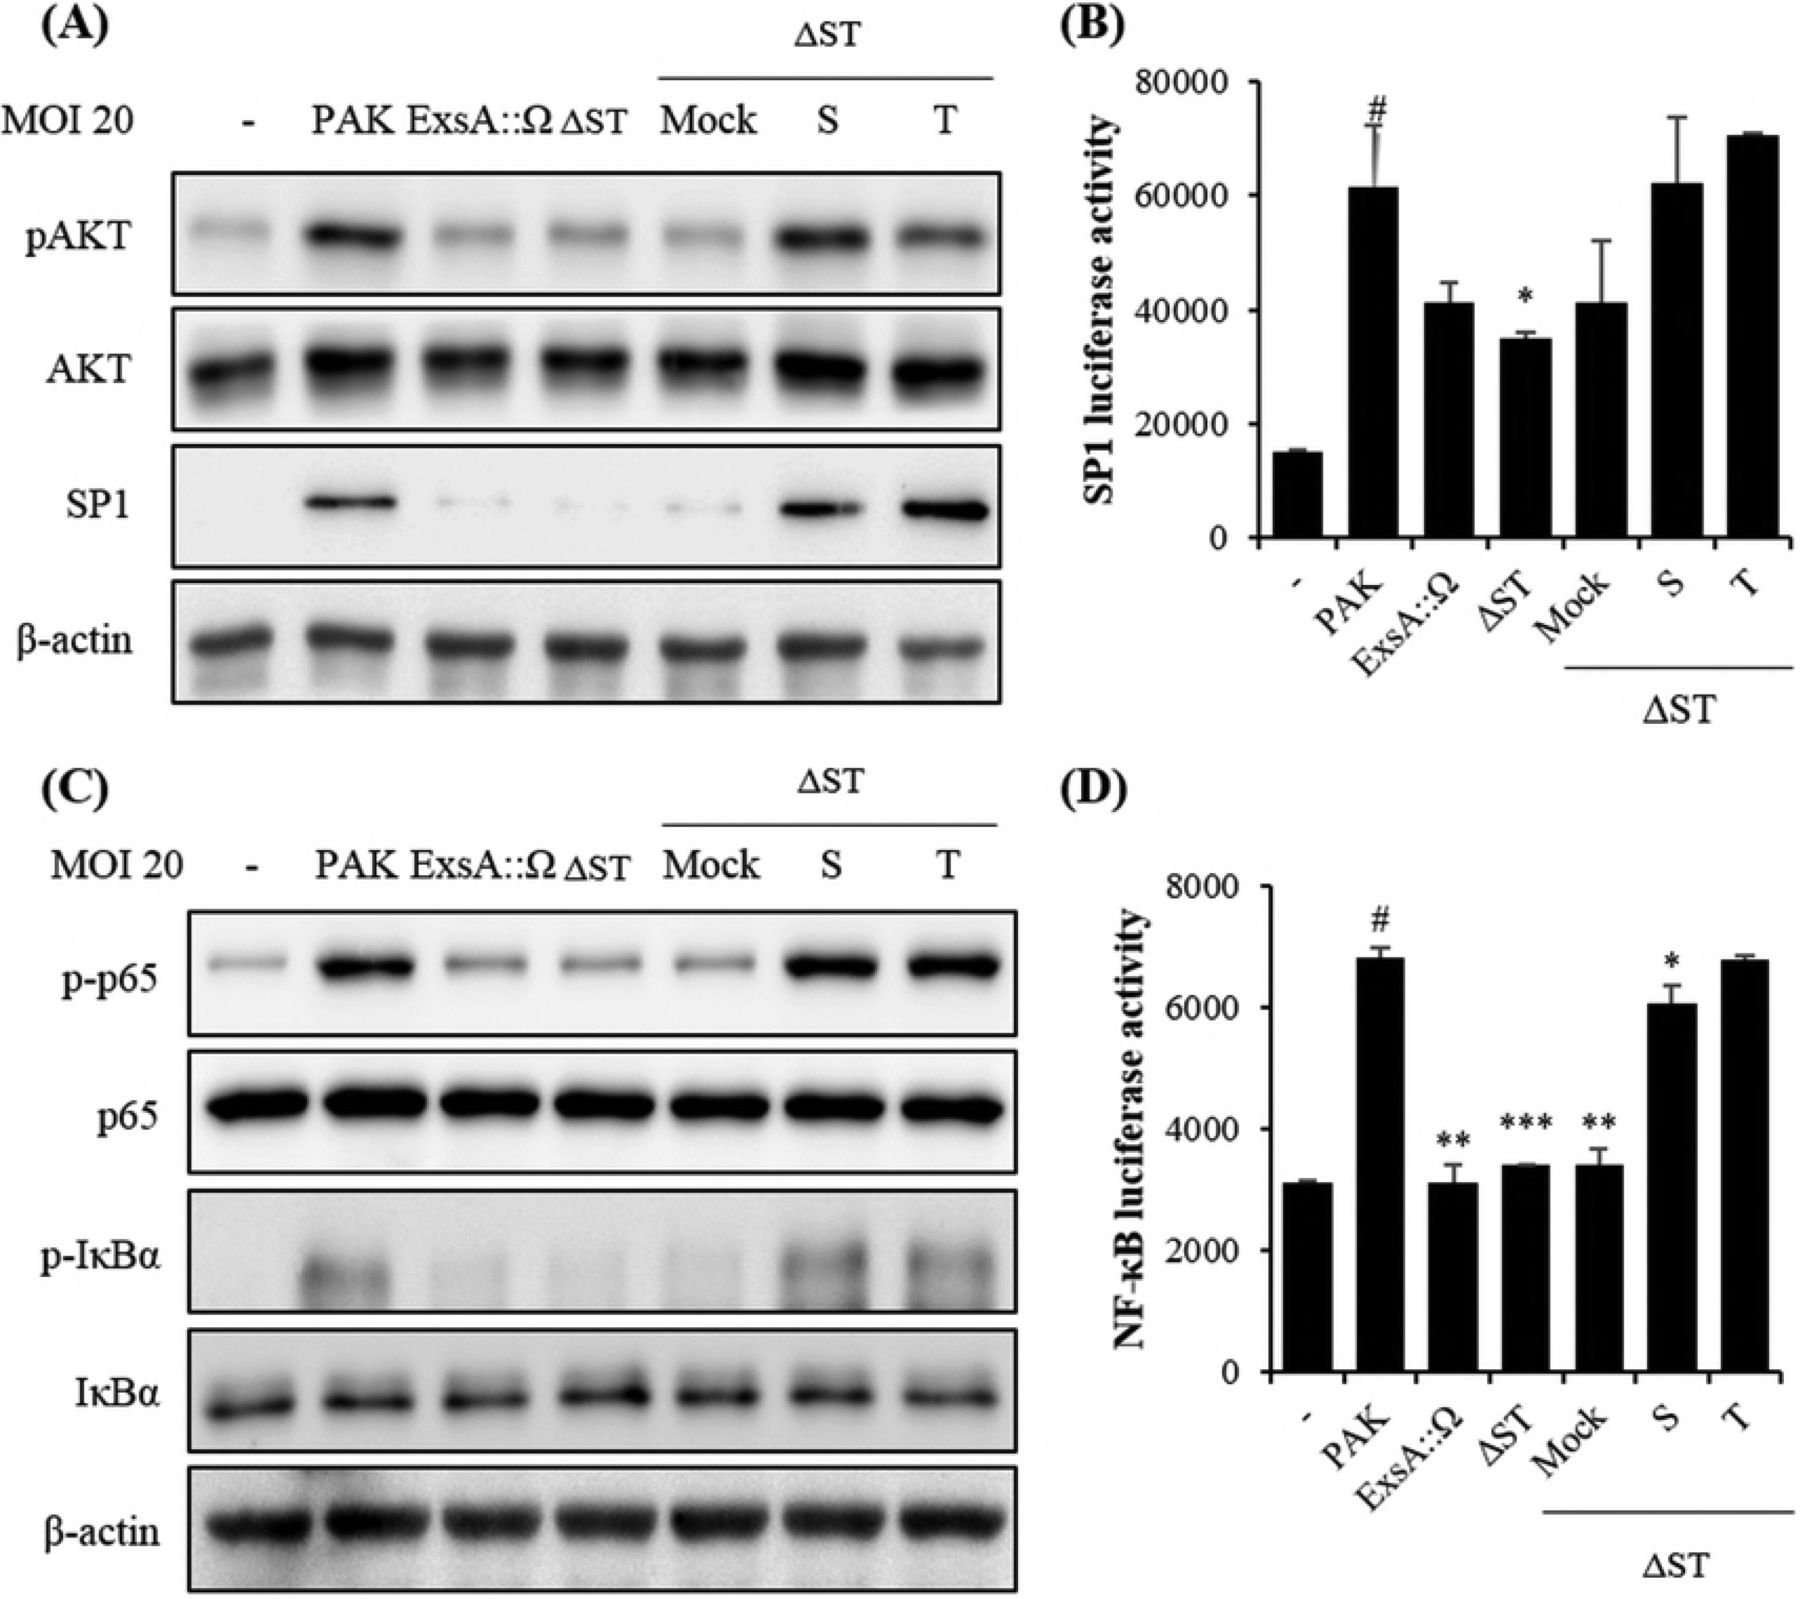 "ExoS and ExoT are required and each sufficient to increase NF-κB and AKT signaling in A549 cells. A549 cells were infected with the indicated strains for 1 h. (A) AKT and p-AKT expression as detected by western blotting. Quantification of p-AKT and SP1 expression using RAS-4000. (B) A549 cells were transfected with SP1 luciferase (Luc) reporter plasmid (0.1 μg). (C) NF-κB expression as detected by western blotting. Quantification of p-p65 and p-lκB-α expression using RAS-4000. β-actin was used as the internal control. (D) A549 cells were transfected with expression NF-κkB luciferase (Luc) reporter plasmid (0.1 μg). At 24 h after transfection, A549 cells were treated with the strains at MOI = 20 for 1 h, and then, luciferase activity was measured. The data were normalized to β-galactosidase activity. All data are representative of 3 independent experiments. Luciferase activities were measured 24 h after the transfection. ""–"", control A549 cells treated with PBS only; PAK, A549 cells infected with P. aeruginosa; ExsA::Ω, A549 cells infected with ExsA::Ω (no T3SS); ΔST, PAK-ΔST mutant; Mock, PAKΔSTmt-pUCP18; S, PAKΔSTmt-pUCP18PAKexoS; T, PAKΔSTmt-pUCP18PAKexoT (MOI = 20)."